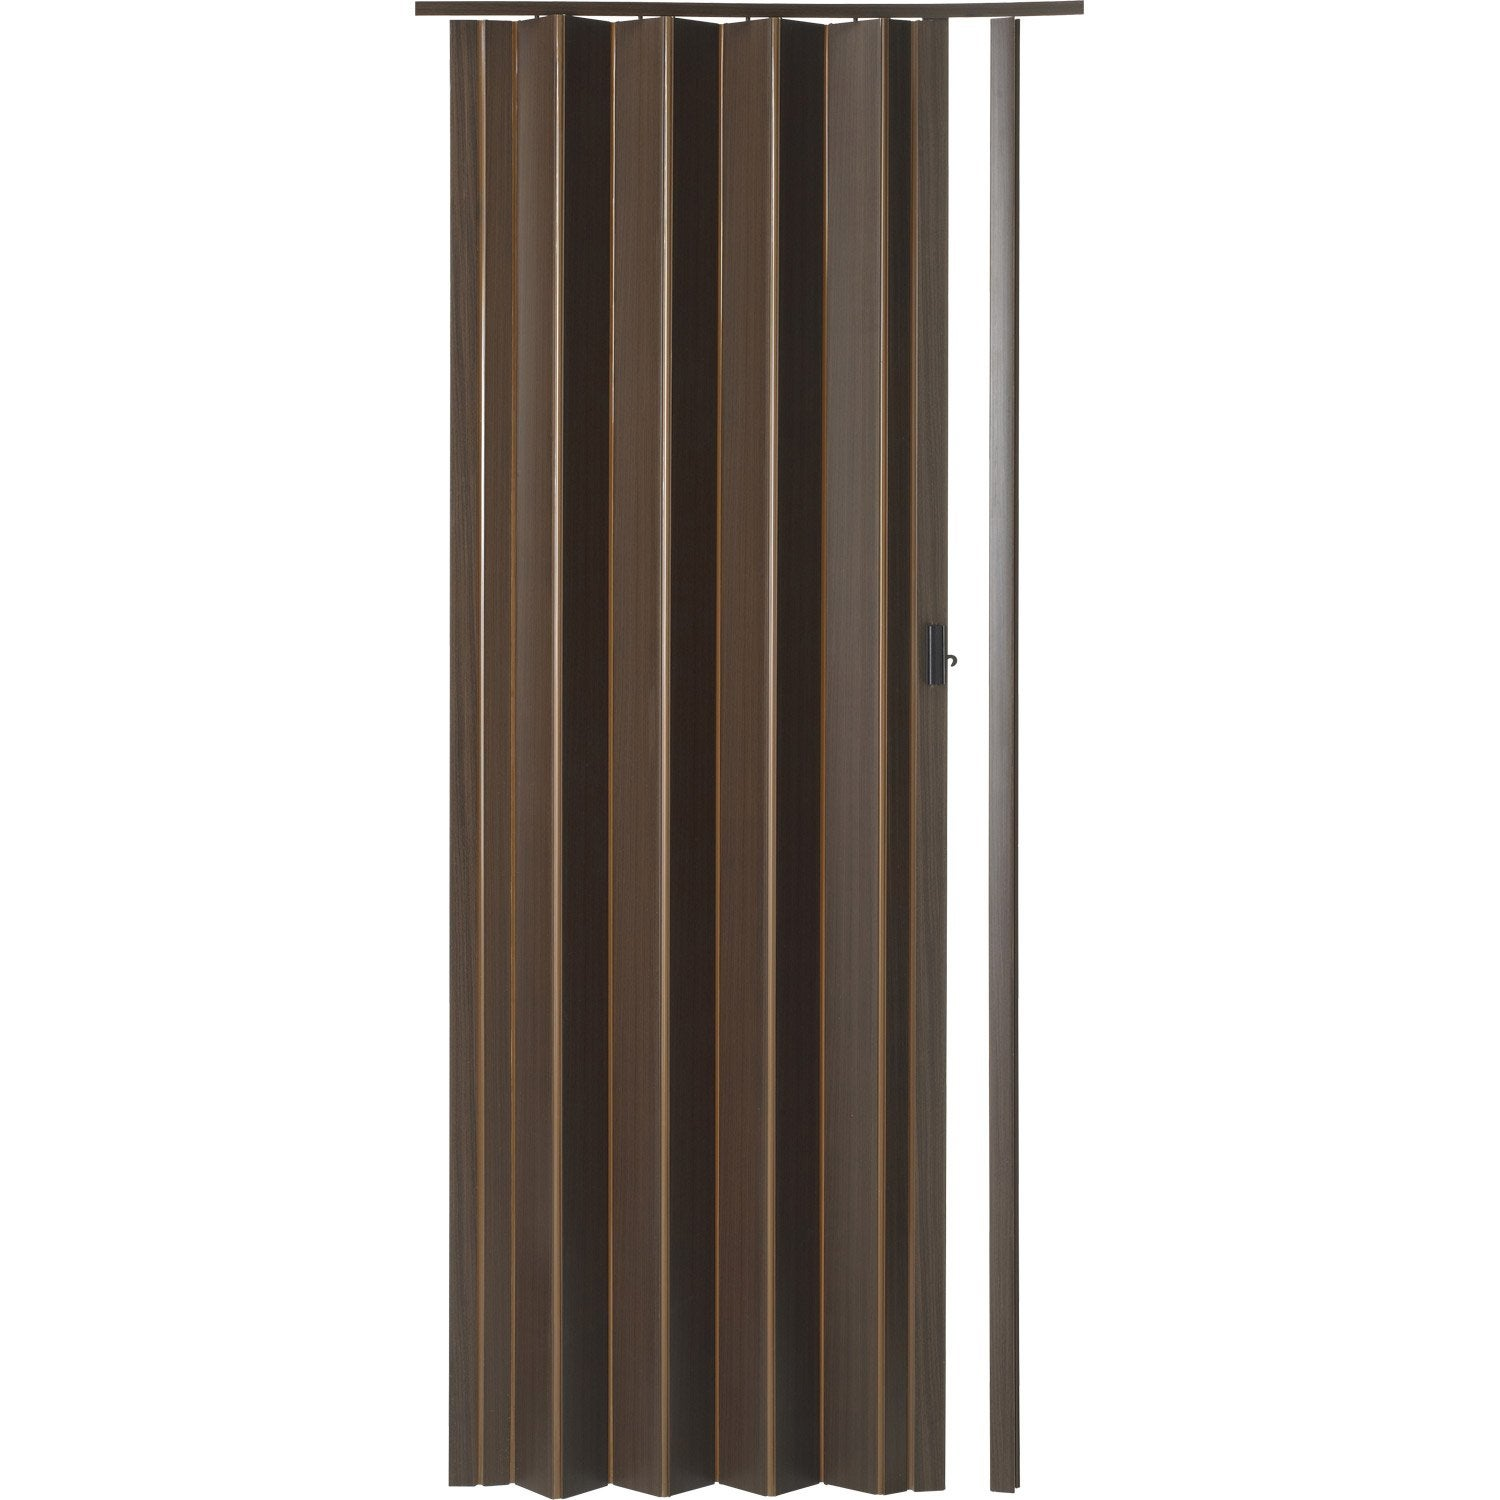 Porte accordeon sur mesure - Porte de placard pliante leroy merlin ...